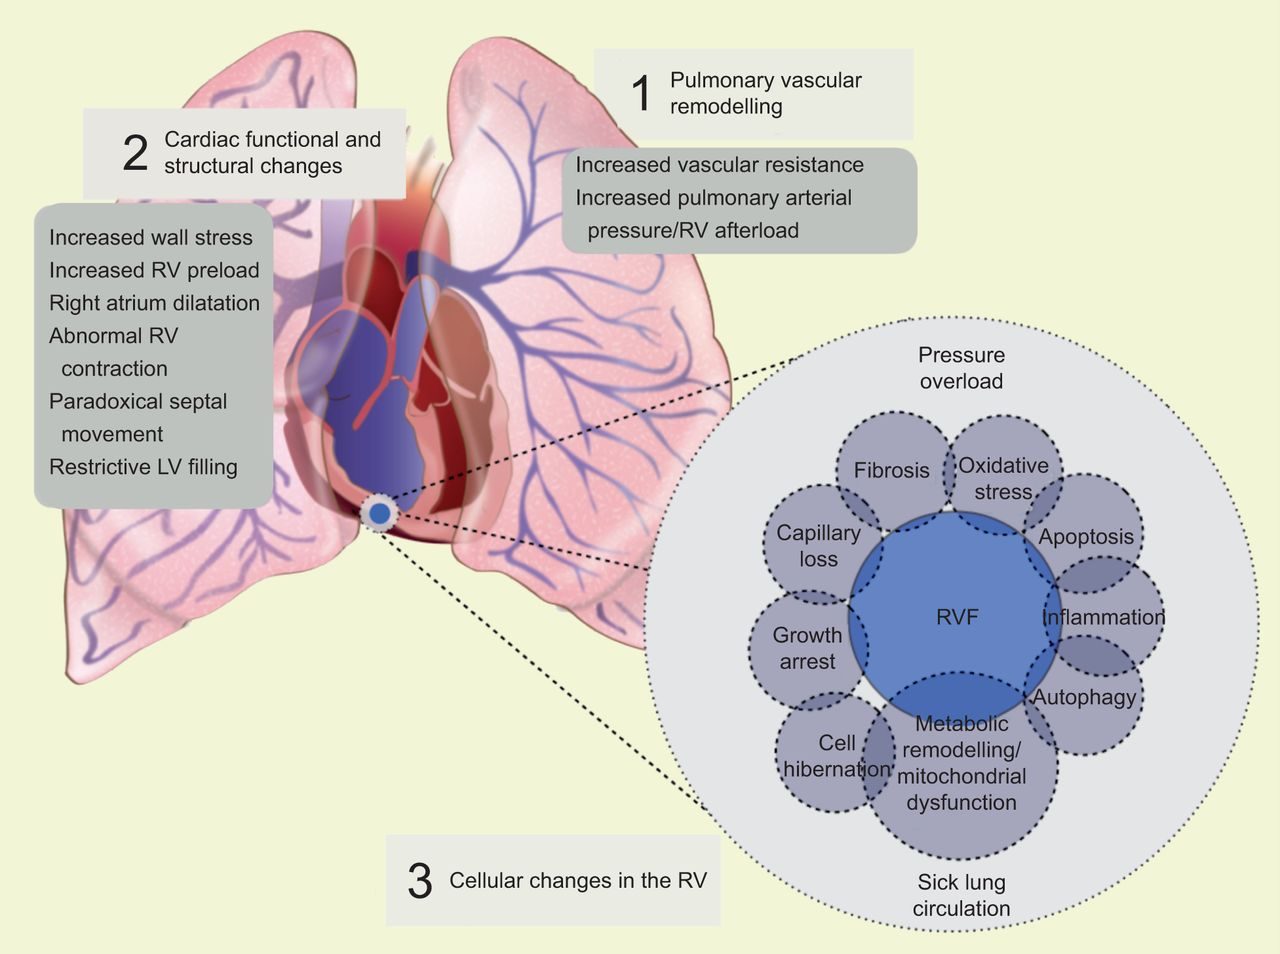 Pathobiology Of Pulmonary Arterial Hypertension And Right